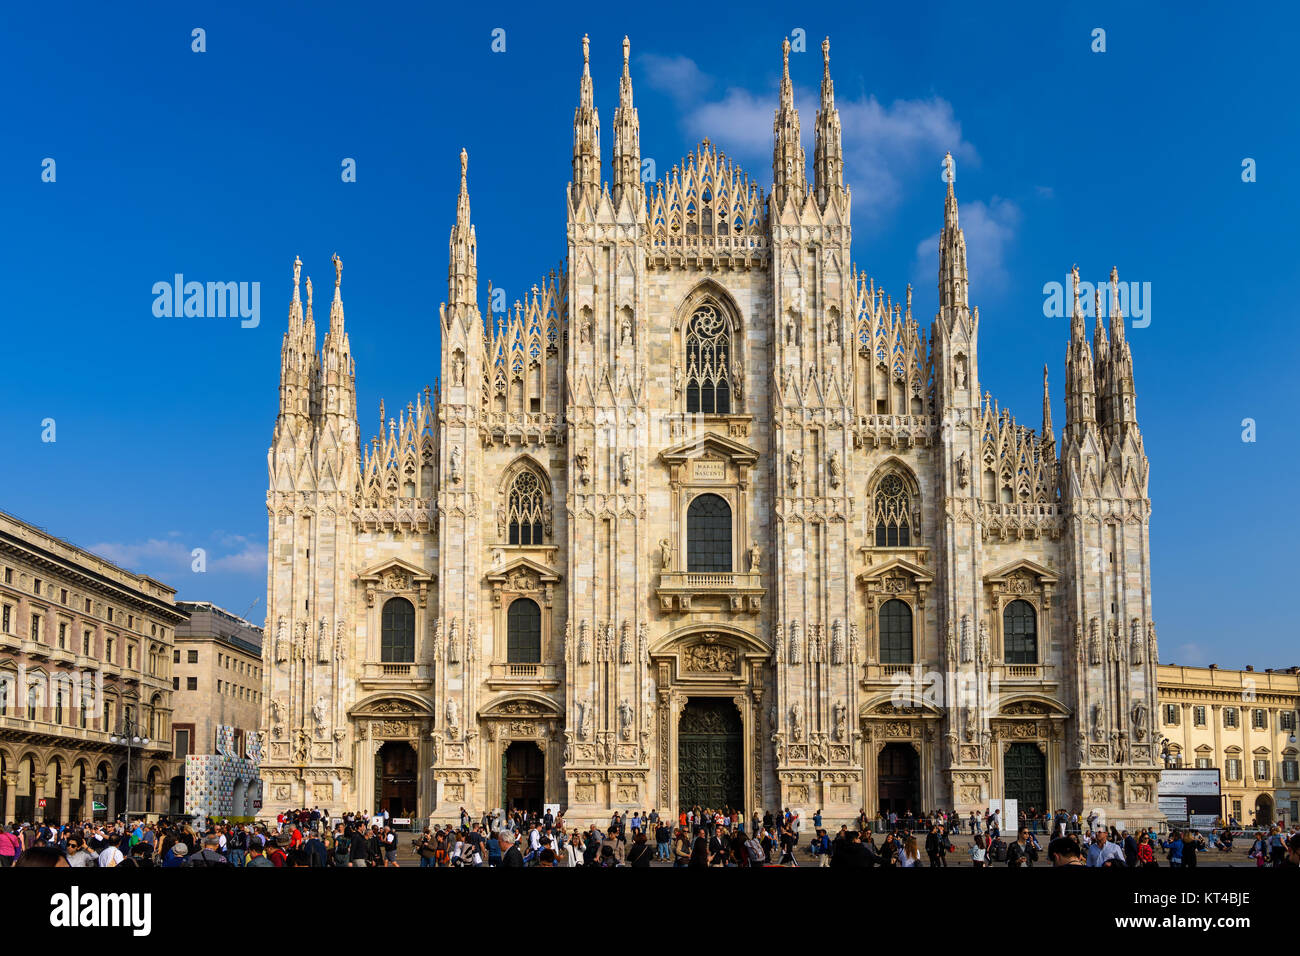 People at Duomo square in front of Milan Cathedral - the largest church in Italy, Milan, Lombardy - Stock Image